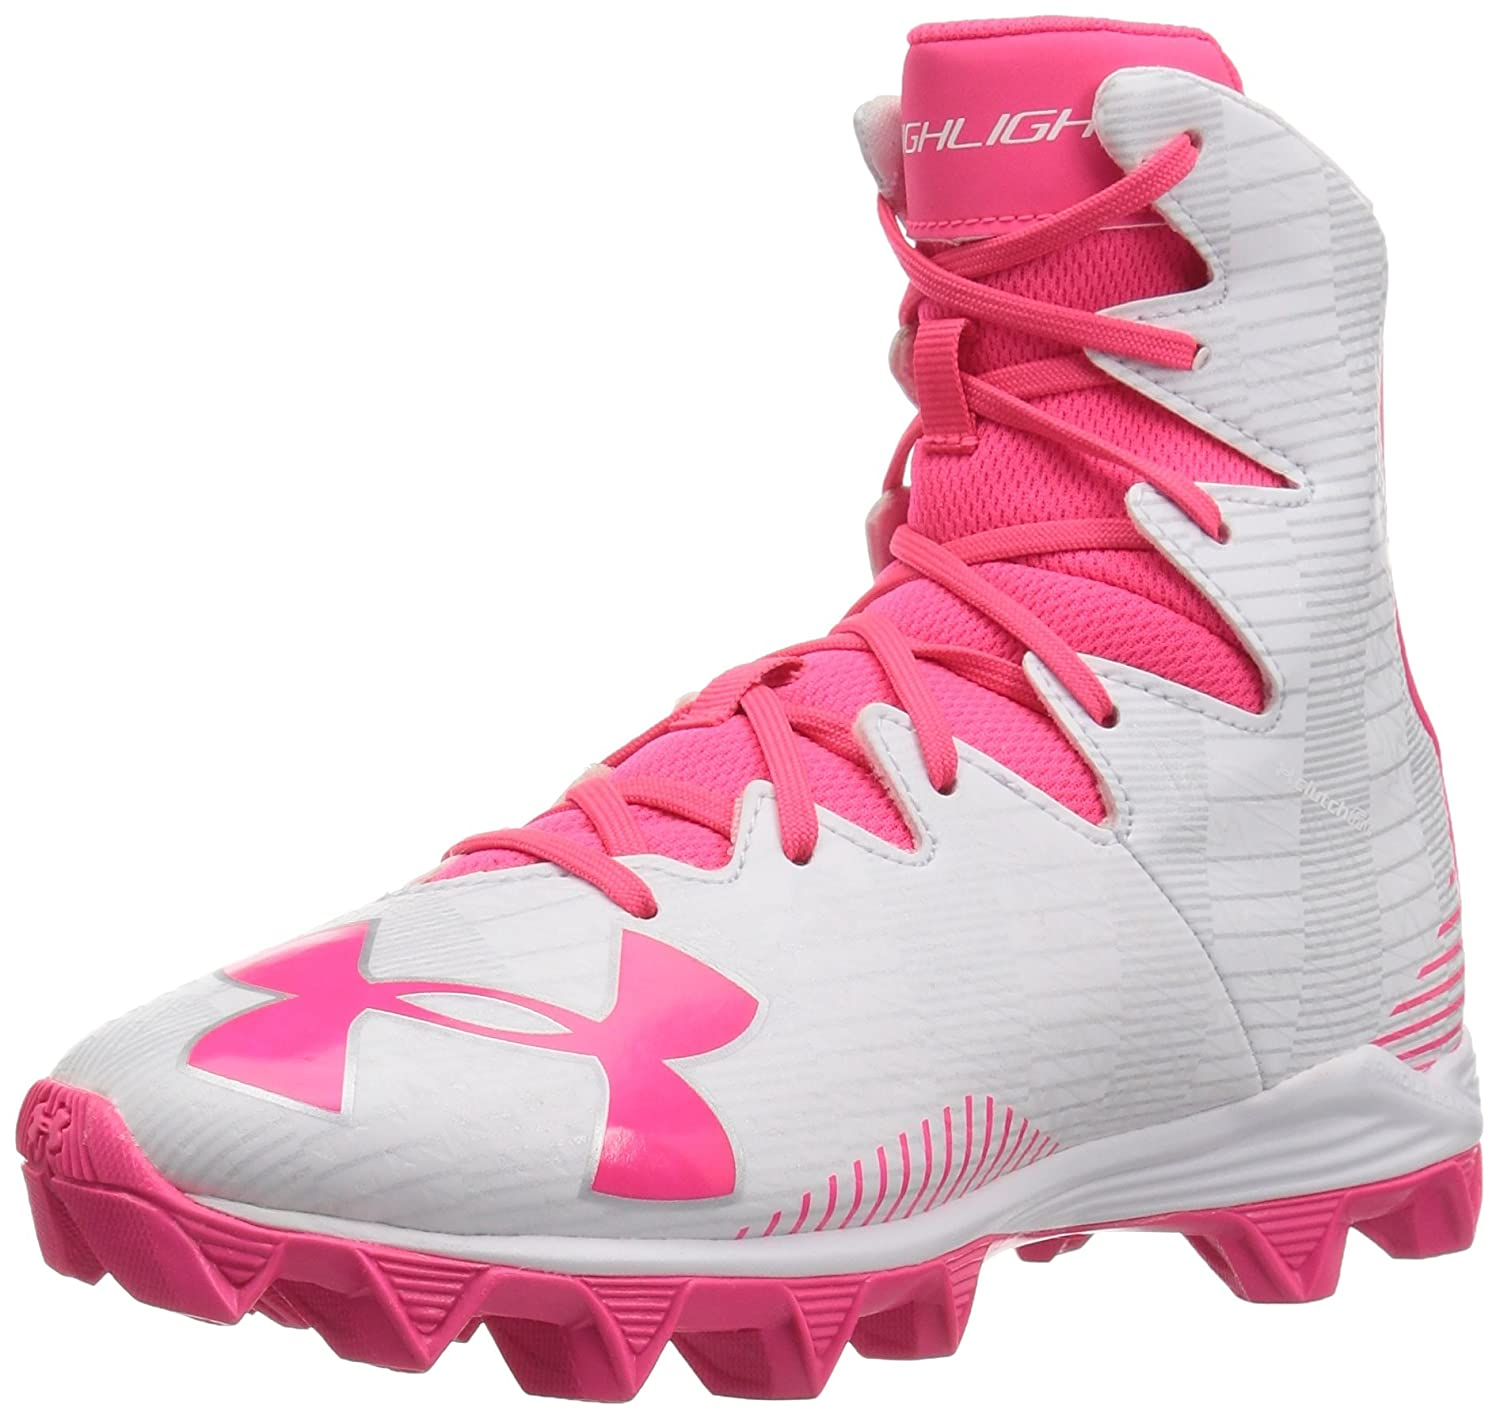 a1890410146b Amazon.com | Under Armour Kids' Highlight Rubber Molded Lacrosse Shoe |  Athletic